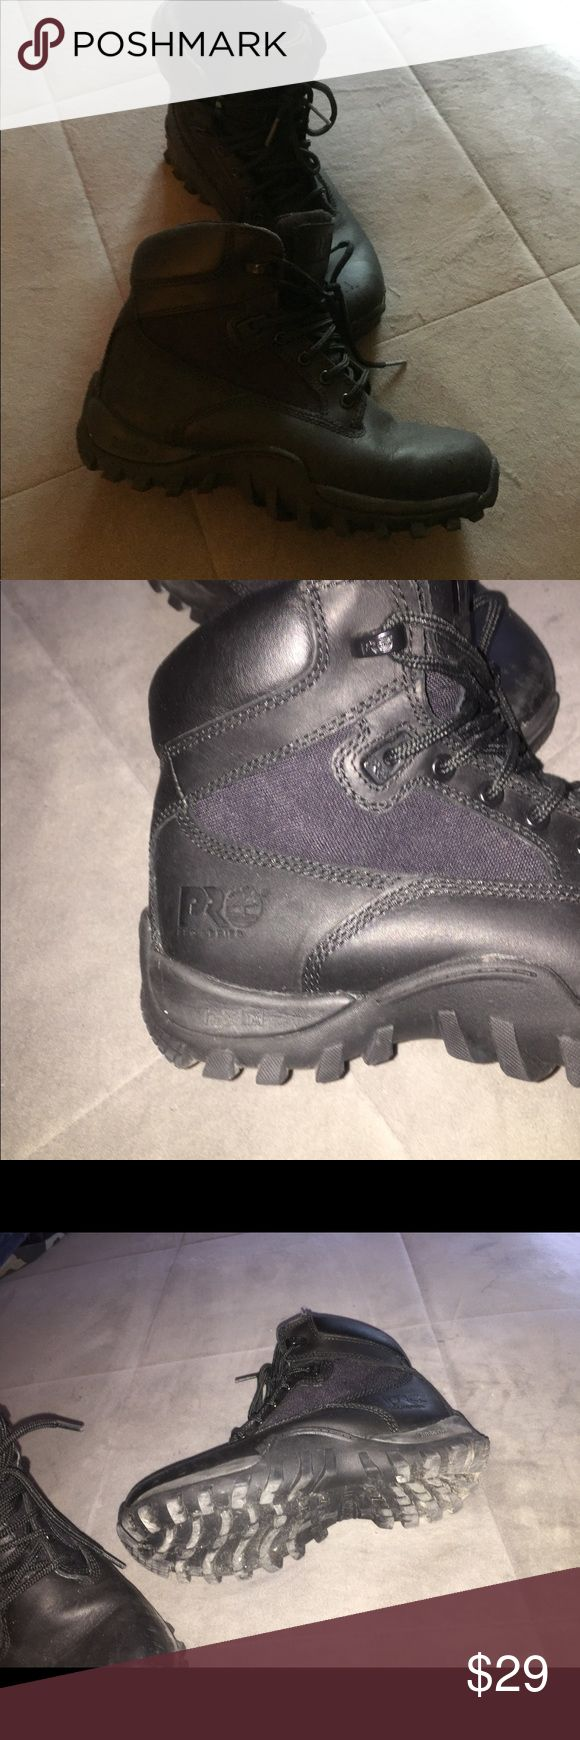 ☠️Boys timberland boots pro style Big boy size 5.5 timberland pro boots worn once one flaw on the boots my son must have kicked his foot and put a scuff in the front I used a light to highlight the flaw cause since they are black u really can't see it I just wanted to make sure the buyer is aware it's there but most kids are going to be tuff on there shoes and boots Timberland Shoes Boots